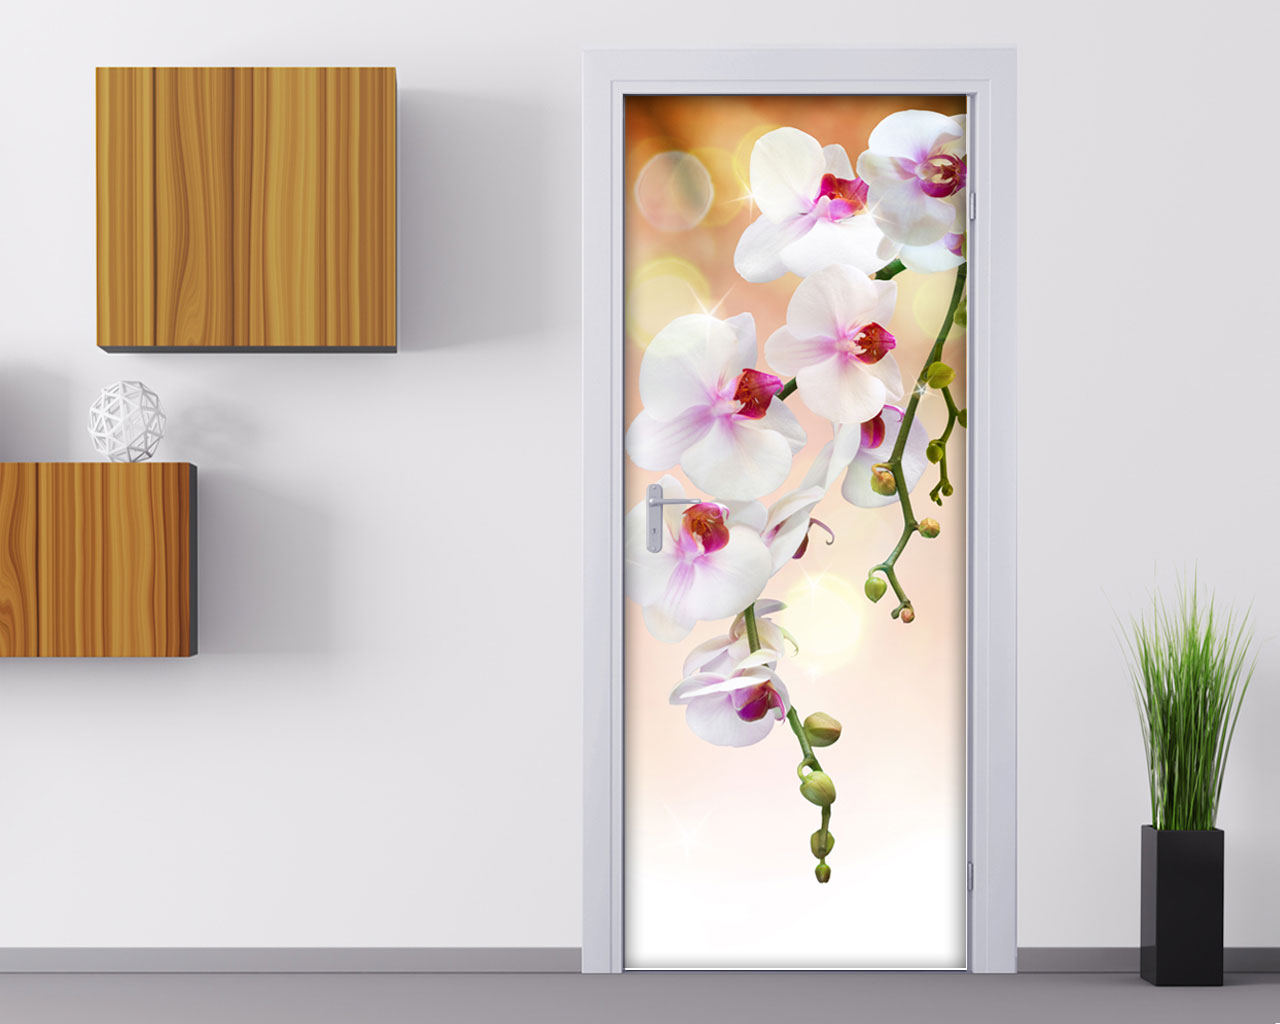 Adesivo per porta orchidea bianca decorazione for Decorazioni su porte interne